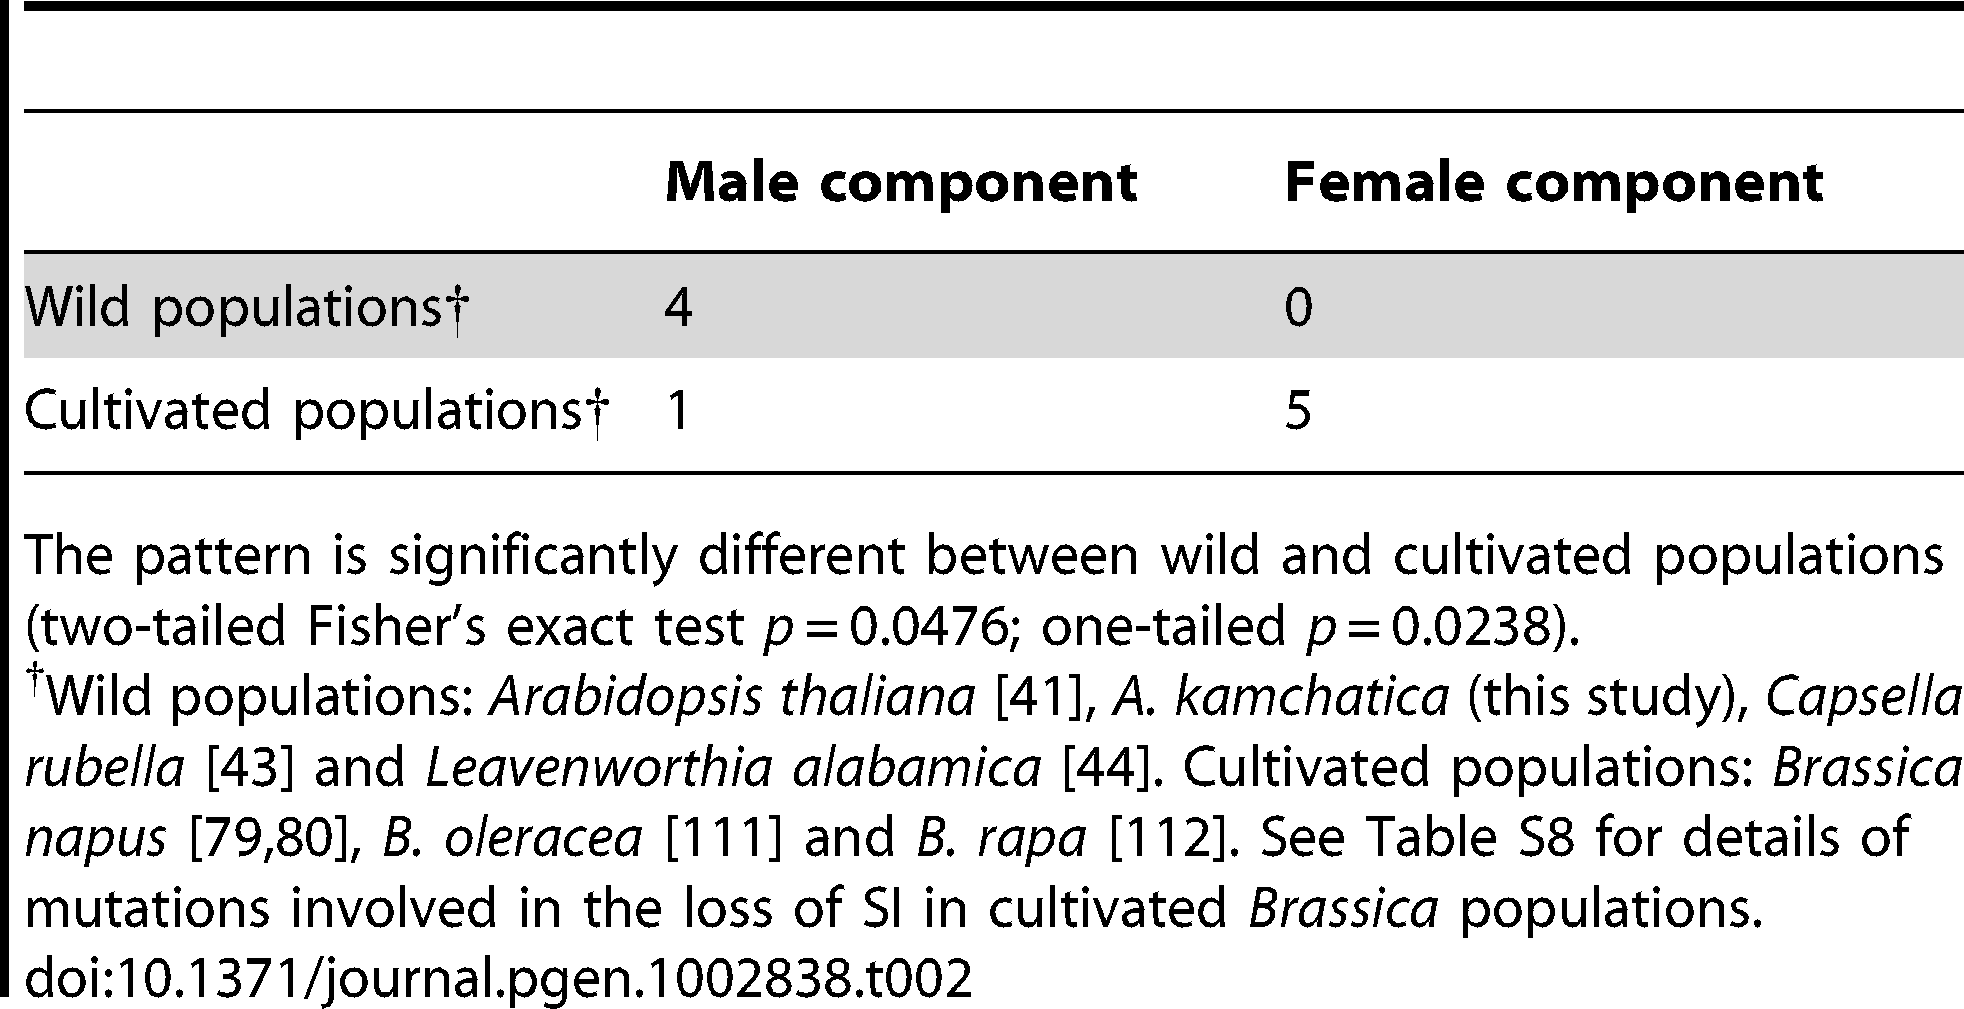 Numbers of examples in which the primary mutations involved in the loss of SI are attributable to male or female components of self-incompatibility.